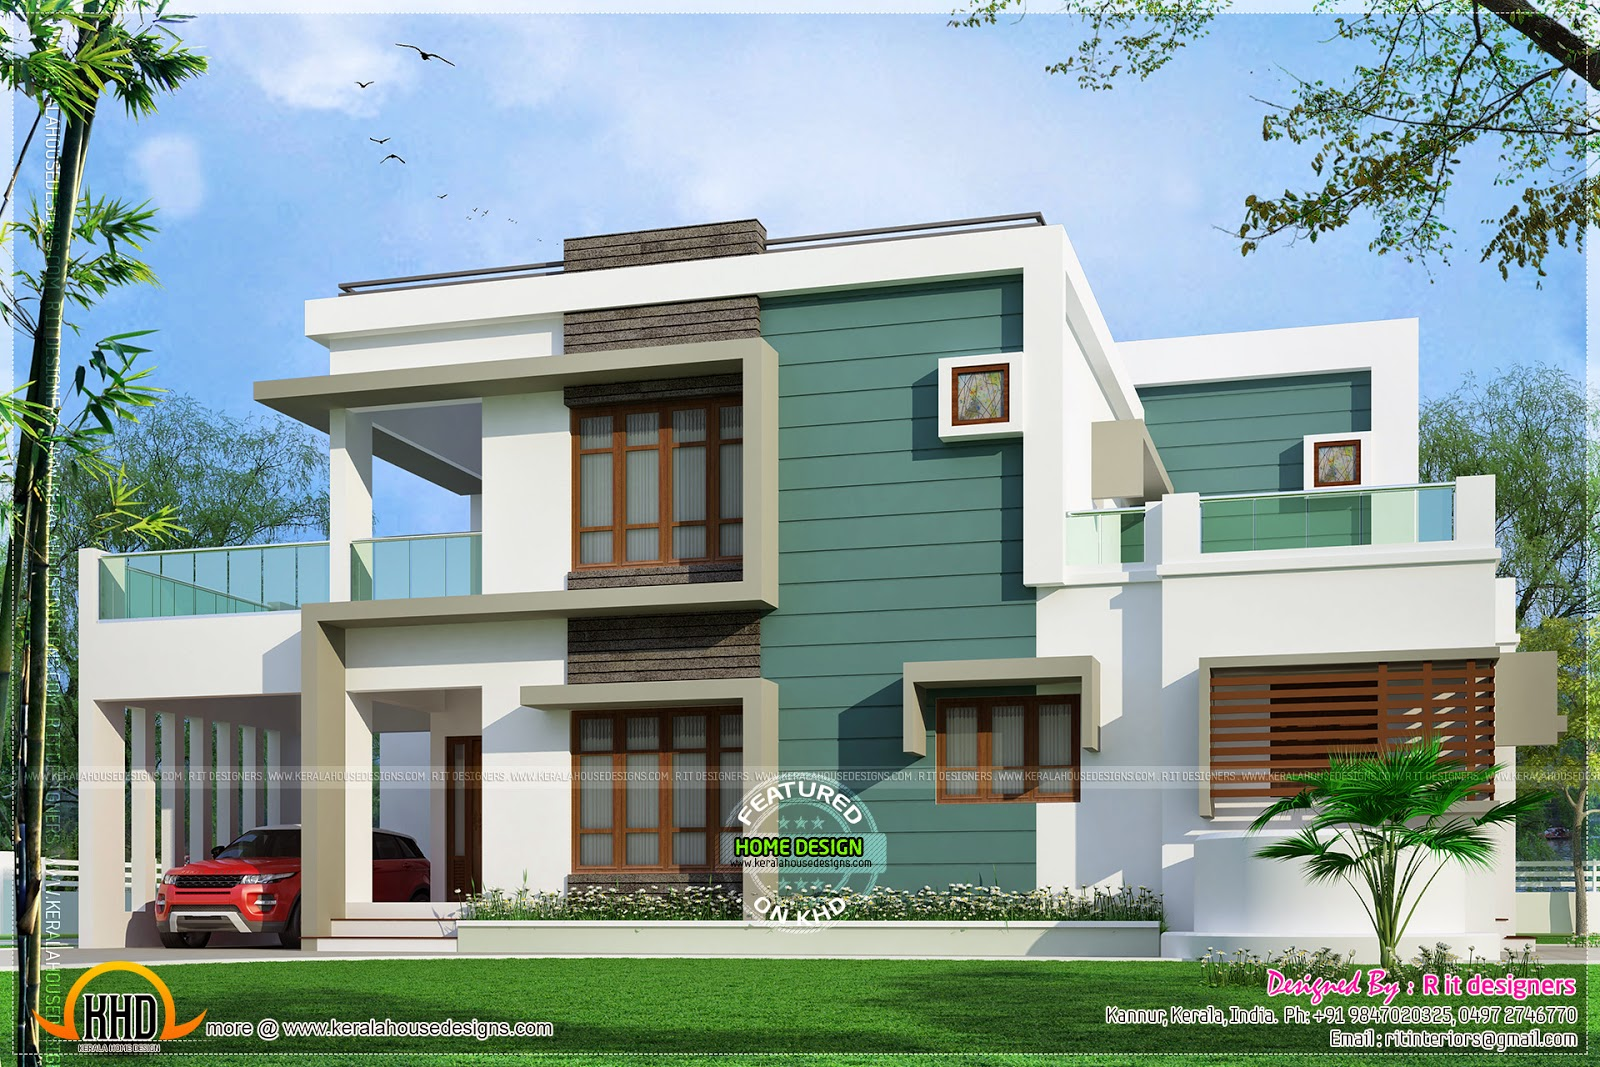 Kannur home design kerala home design and floor plans for House and home decorating